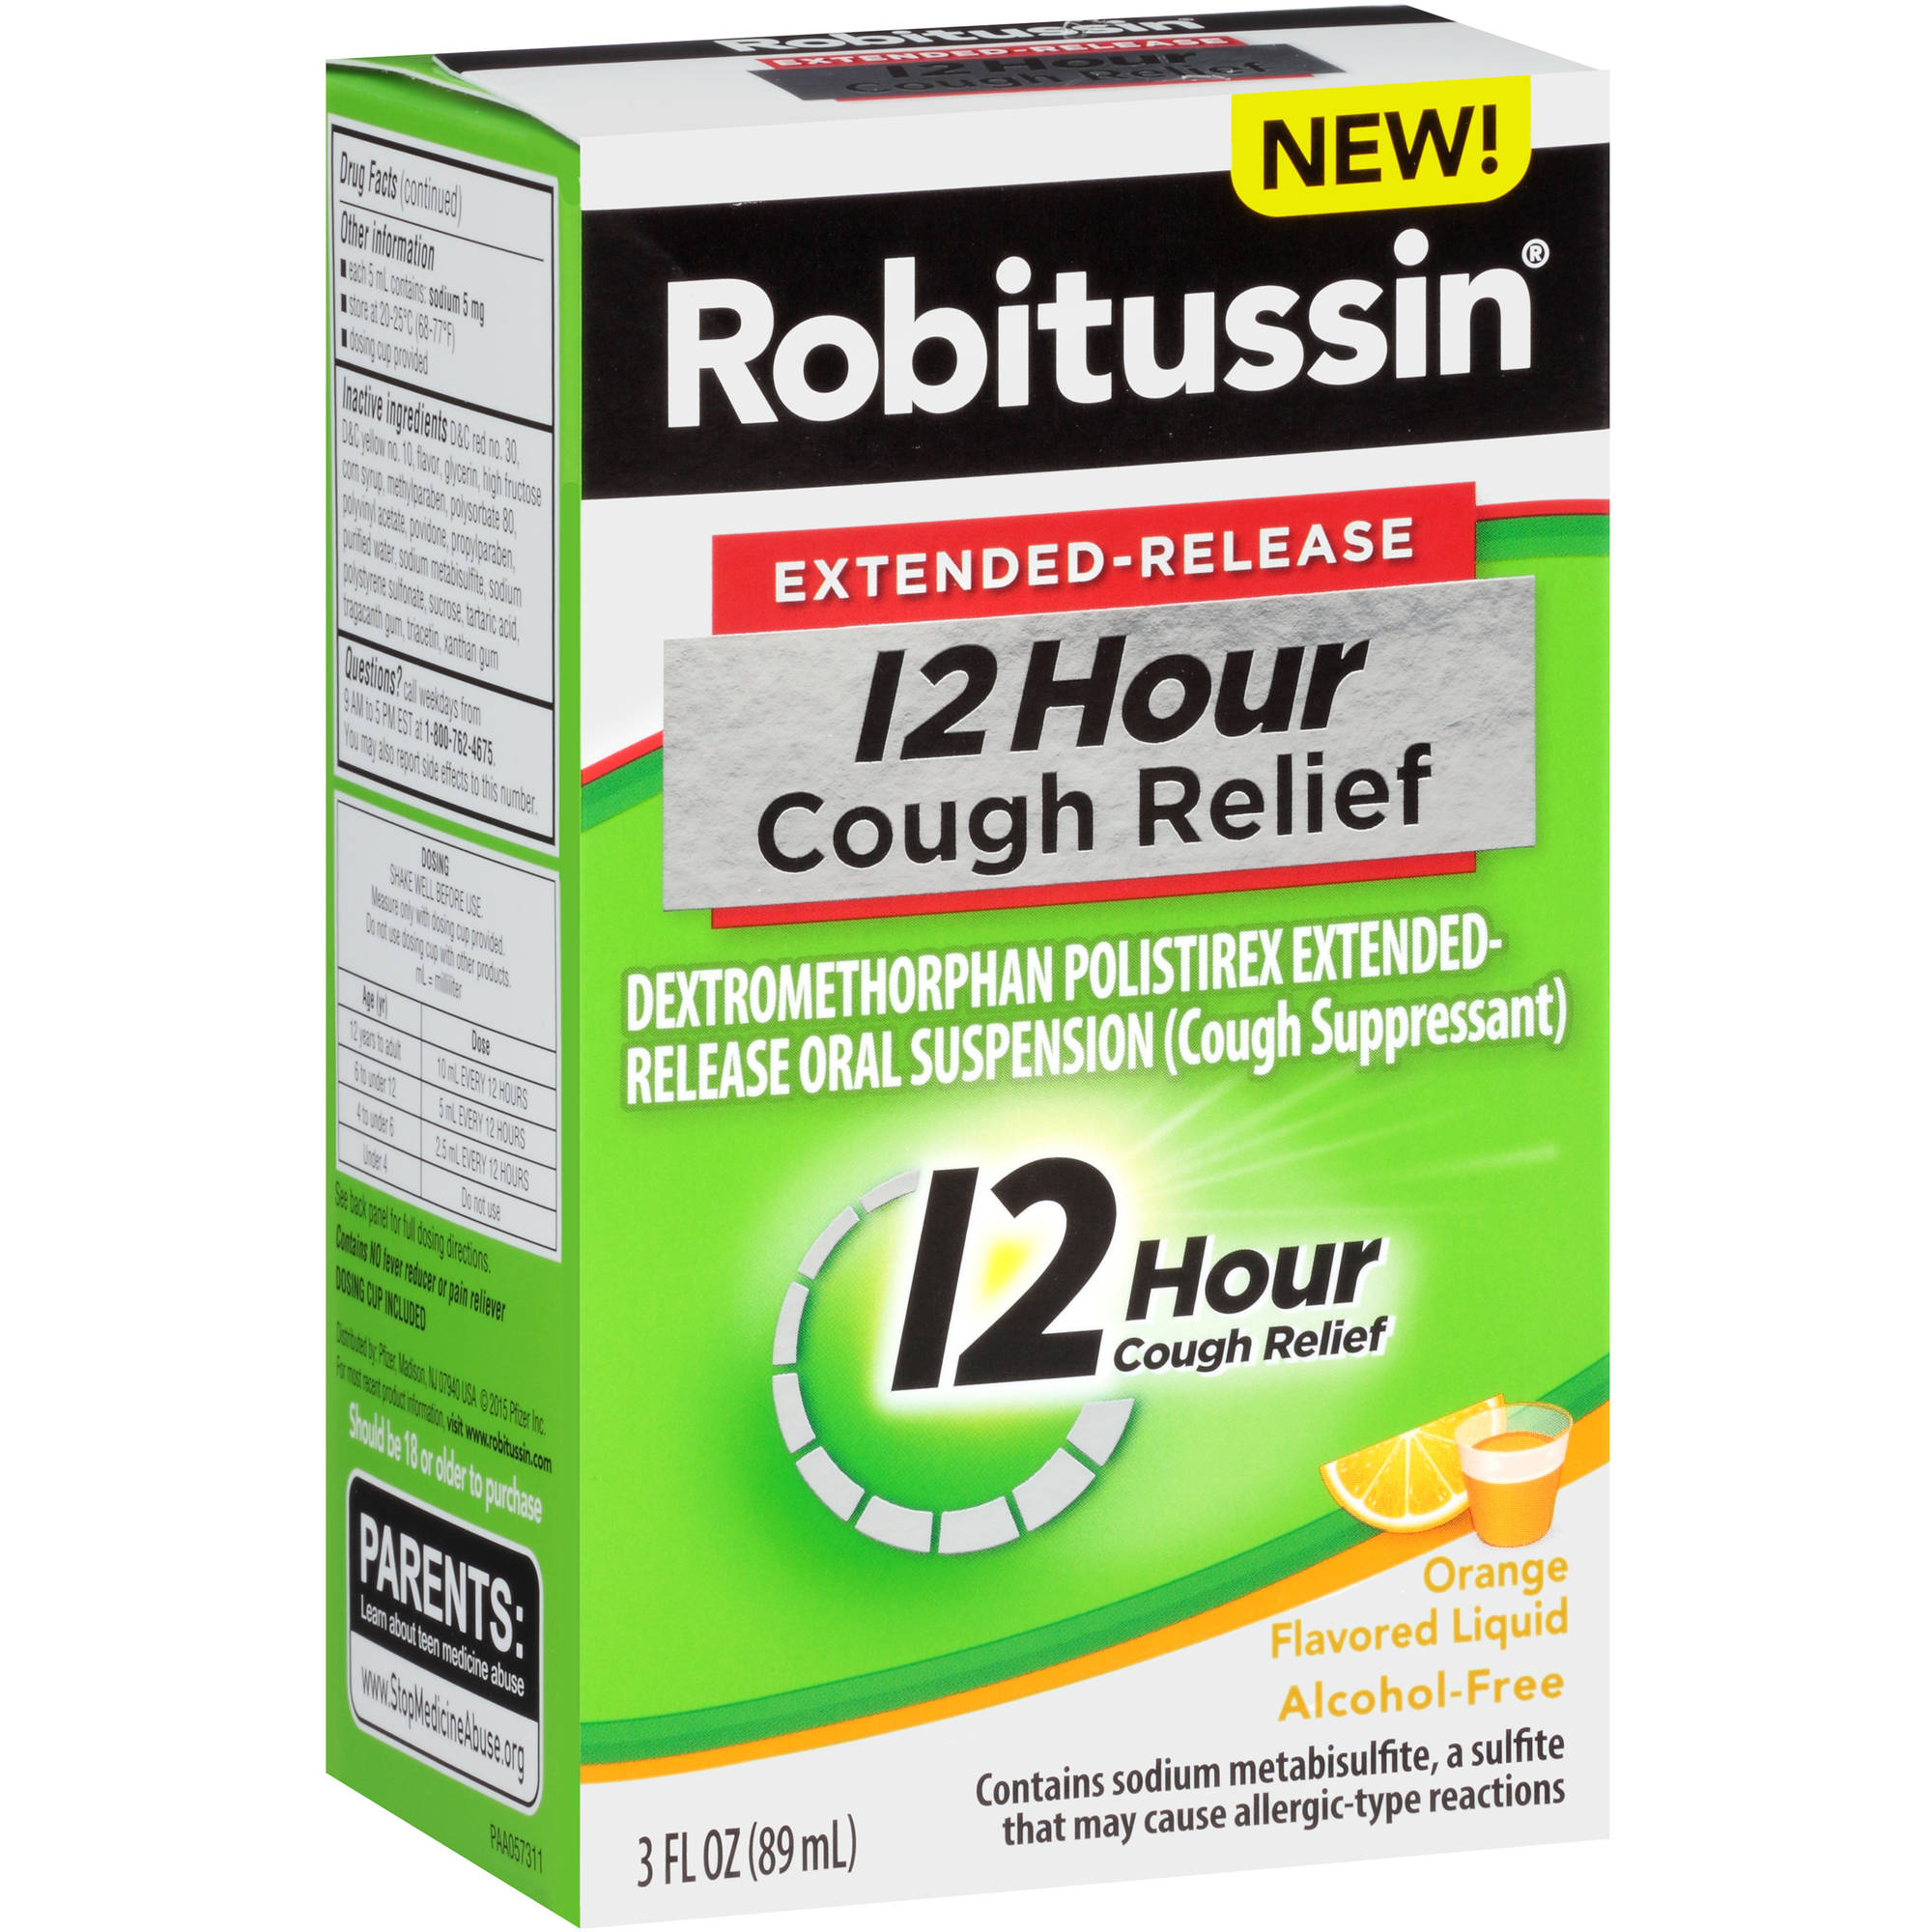 Robitussin Extended-Release 12-Hour Cough Relief Cough Suppressant Liquid in Orange Flavor 3 fl oz